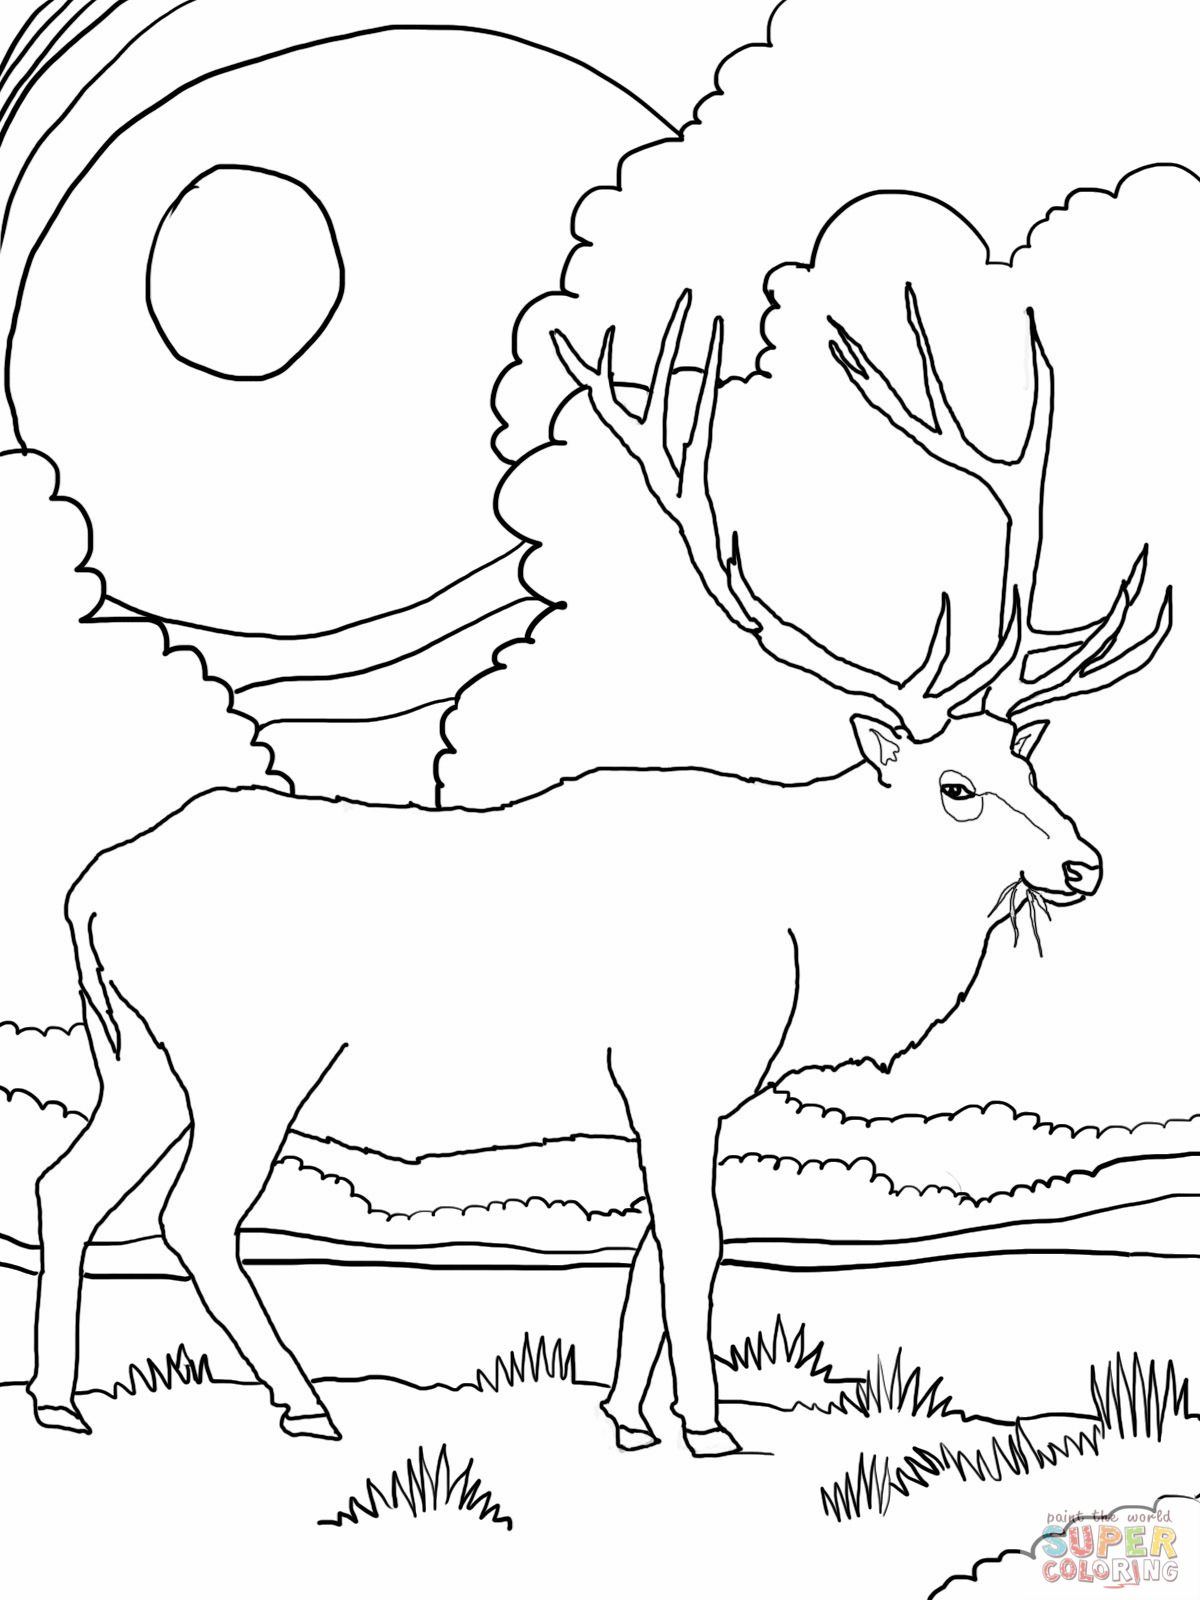 Rocky Mountain Elk Online Coloring Pages Free Online Coloring Deer Coloring Pages